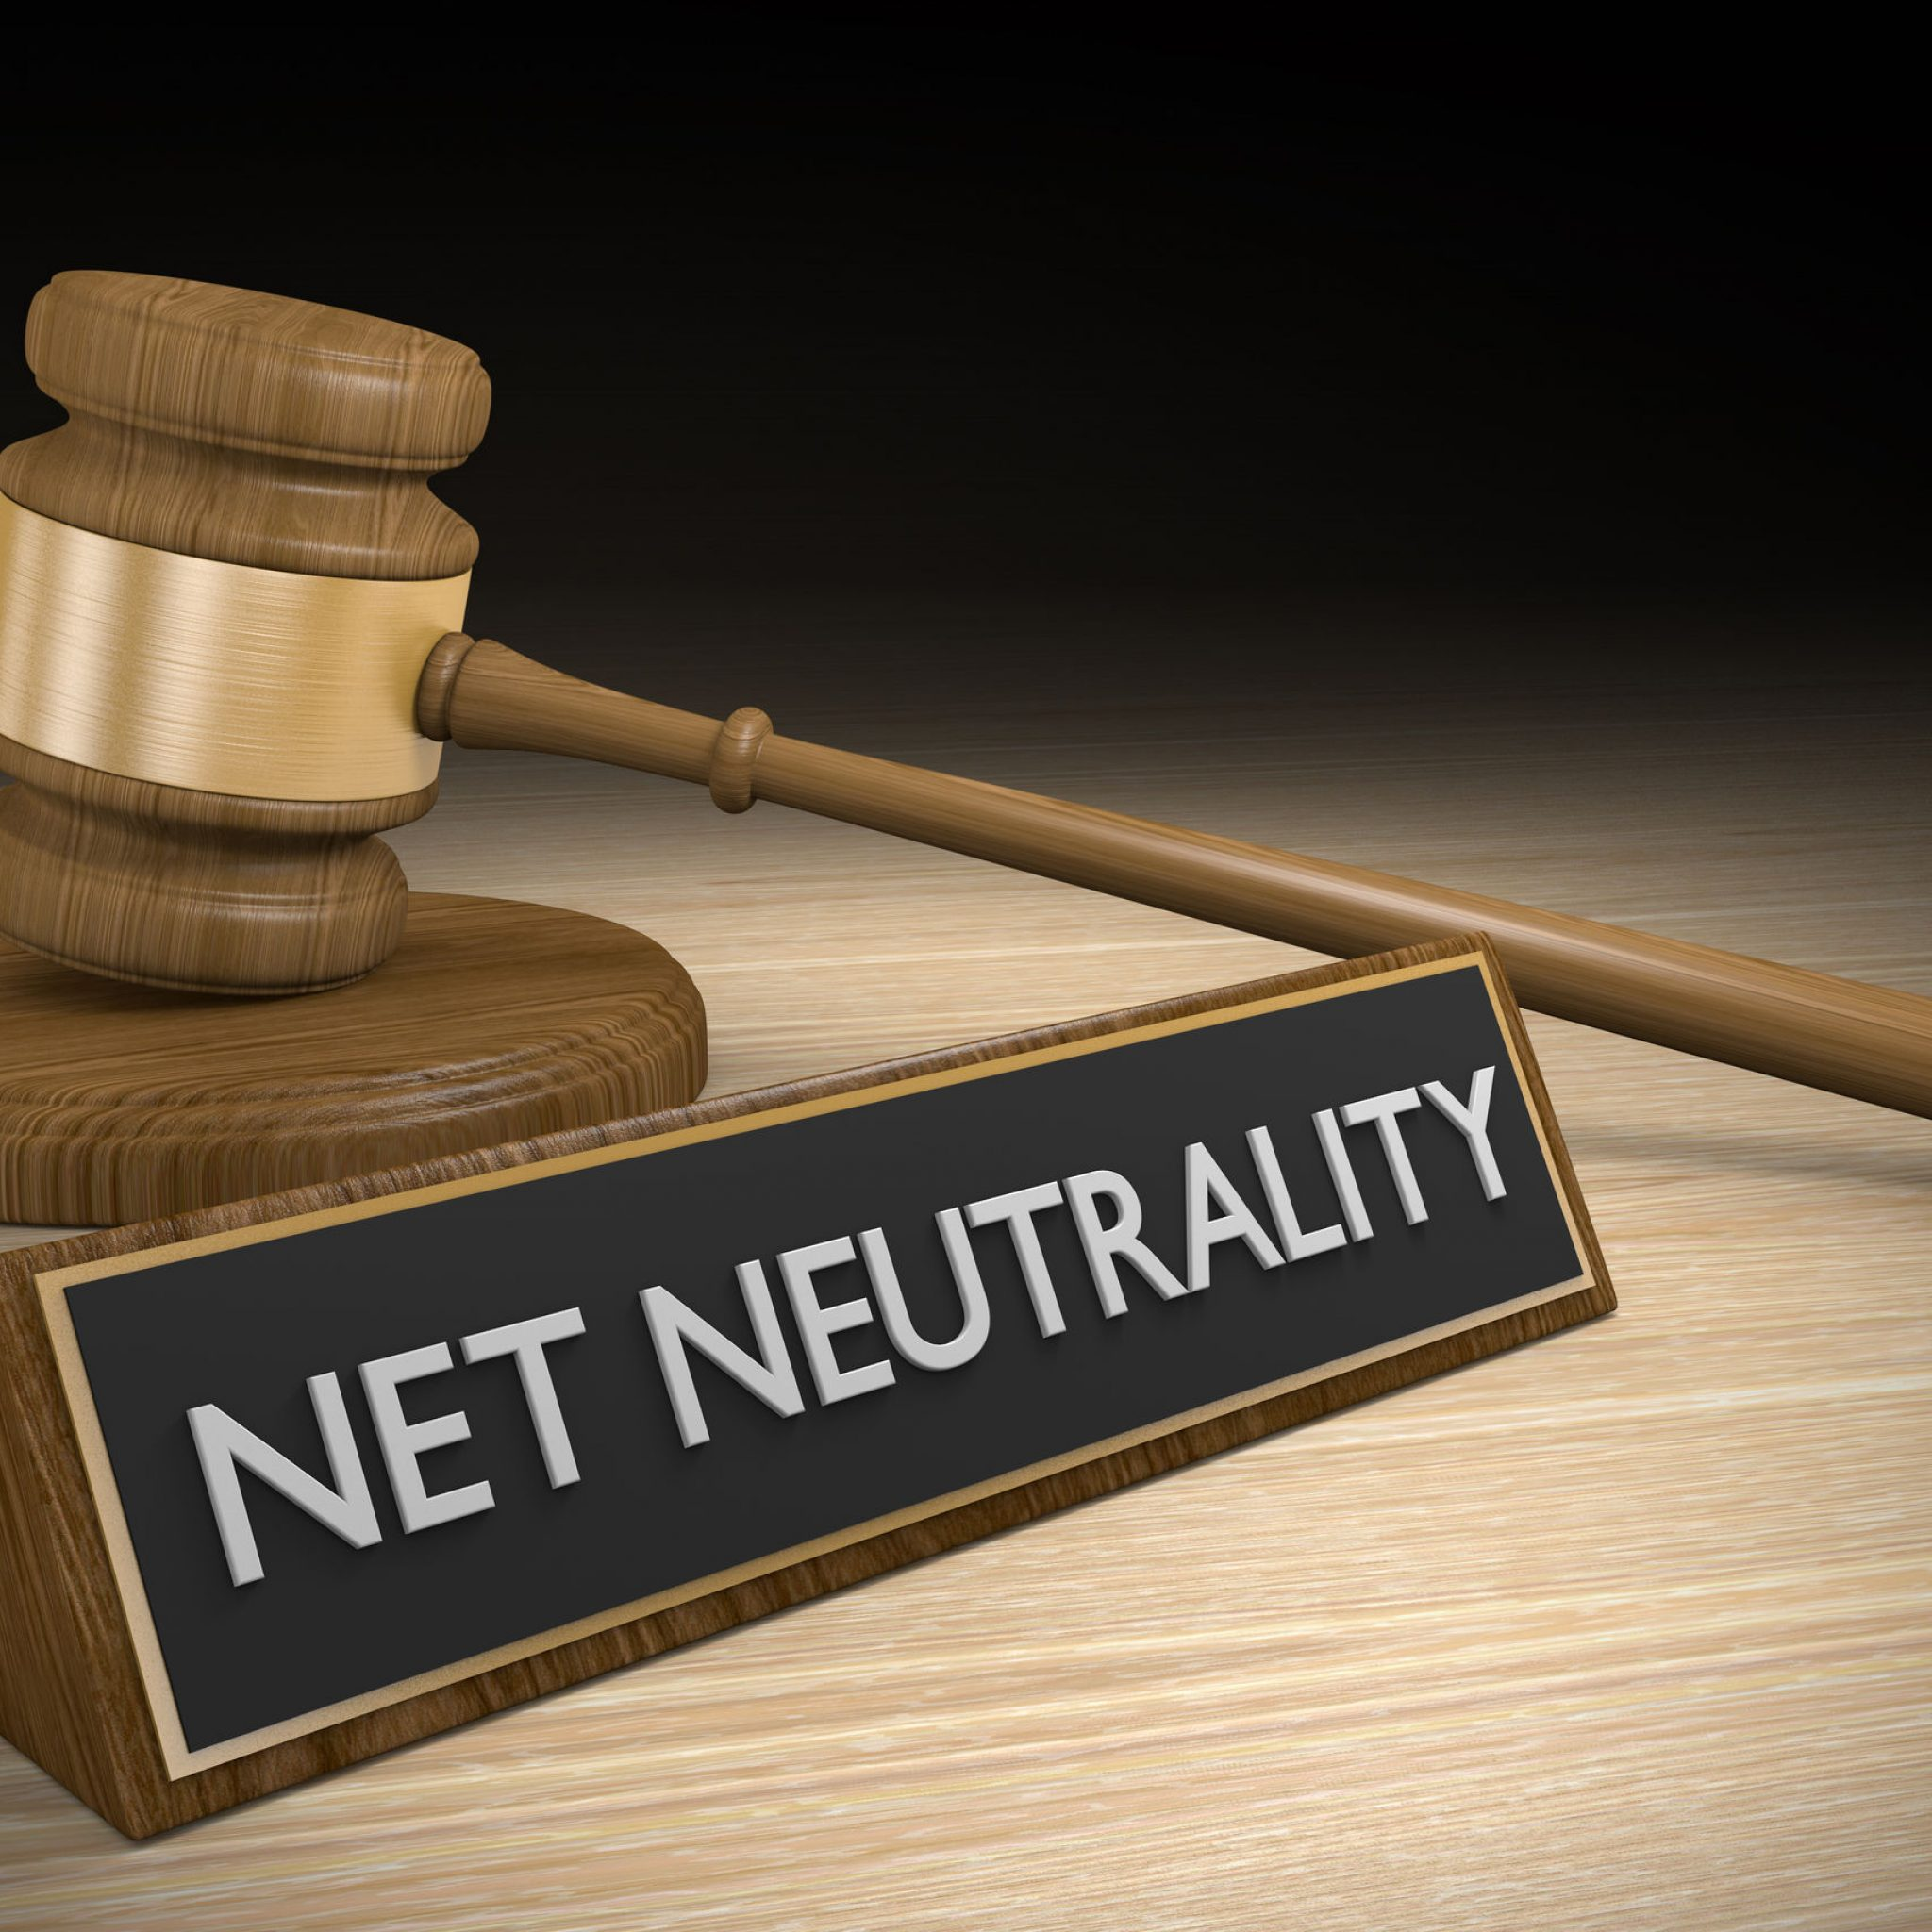 Netflix Joins Internet Association's Efforts to Preserve Net Neutrality